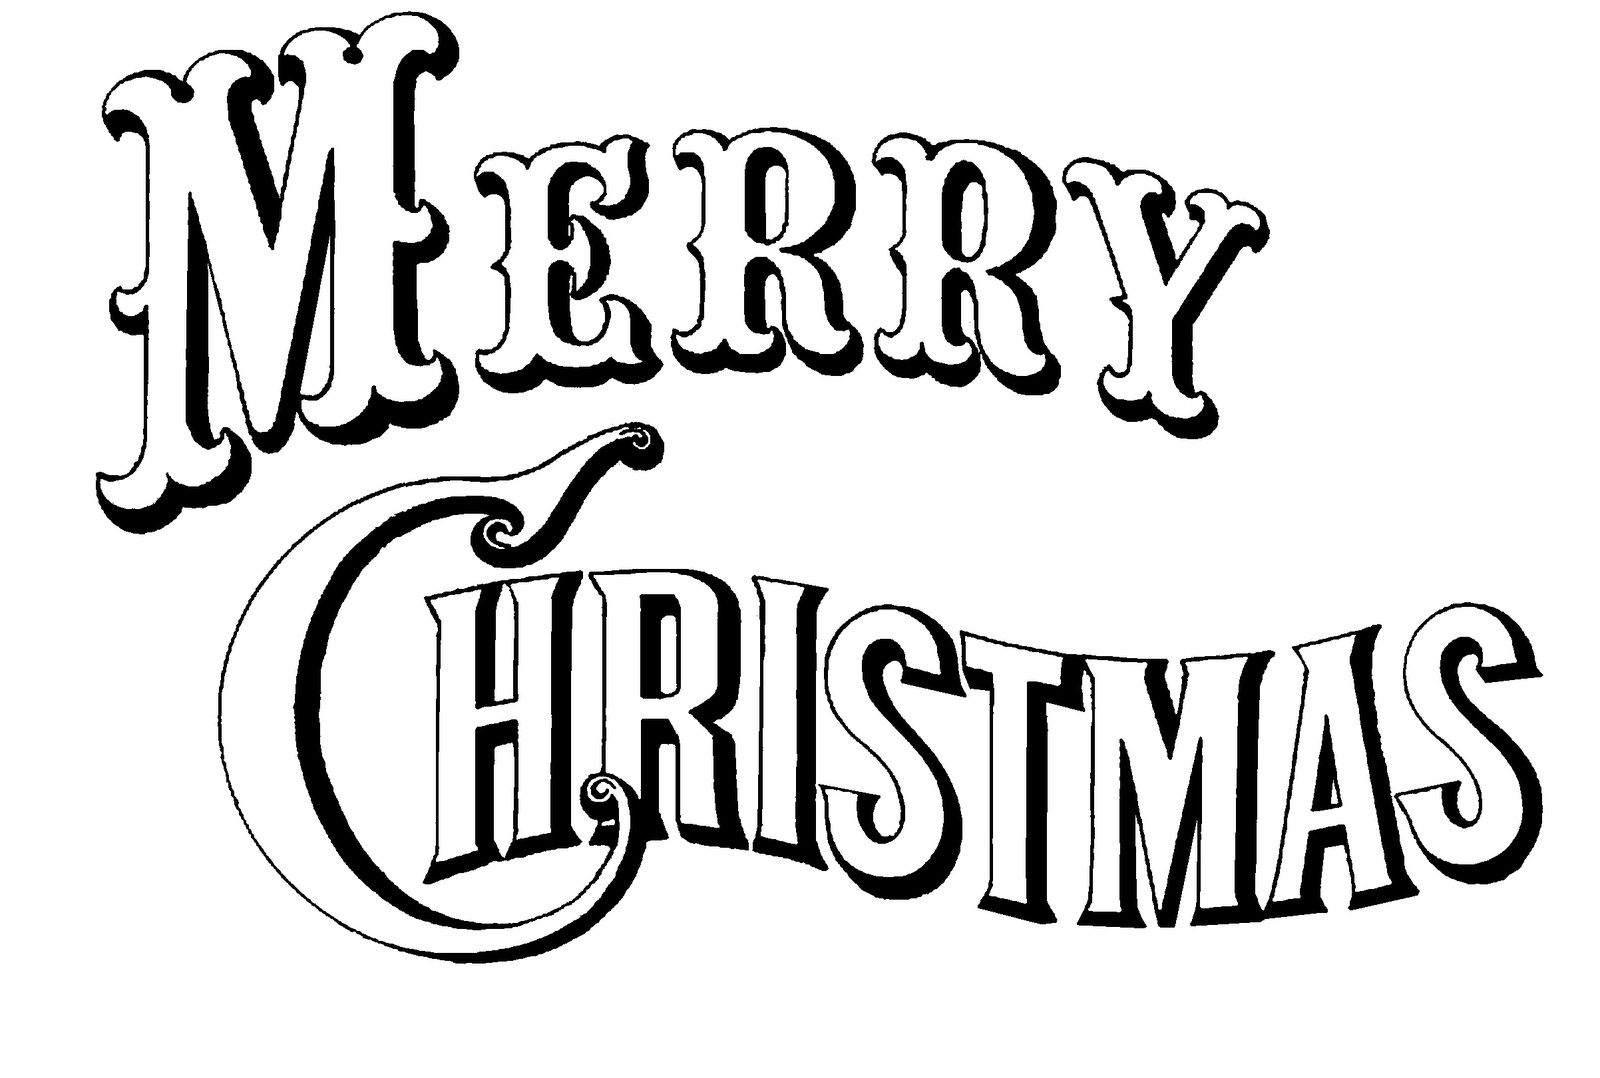 Merry Christmas Coloring Pages To Print - Free Printable Calendar - Merry Christmas Stencil Free Printable